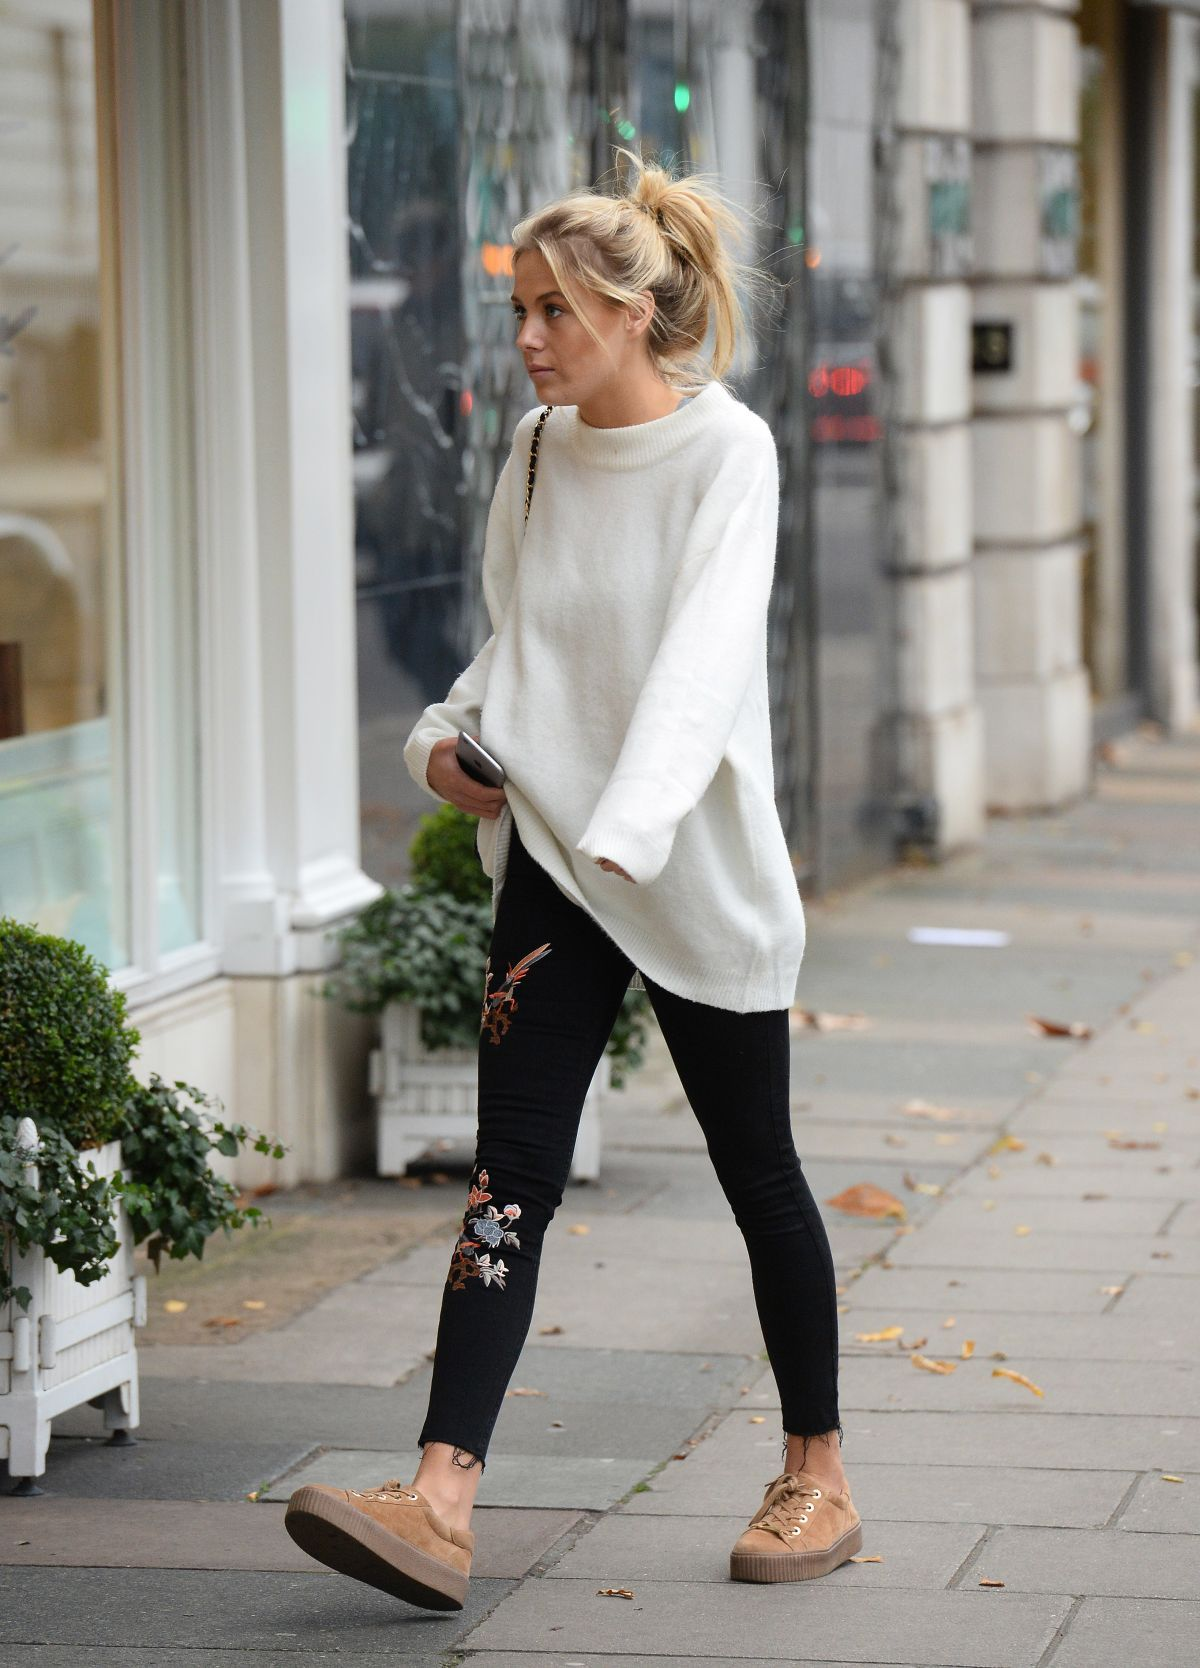 Under Shoppingoutfits 100 stylish super bowl outfits forecast to wear for winter in 2019